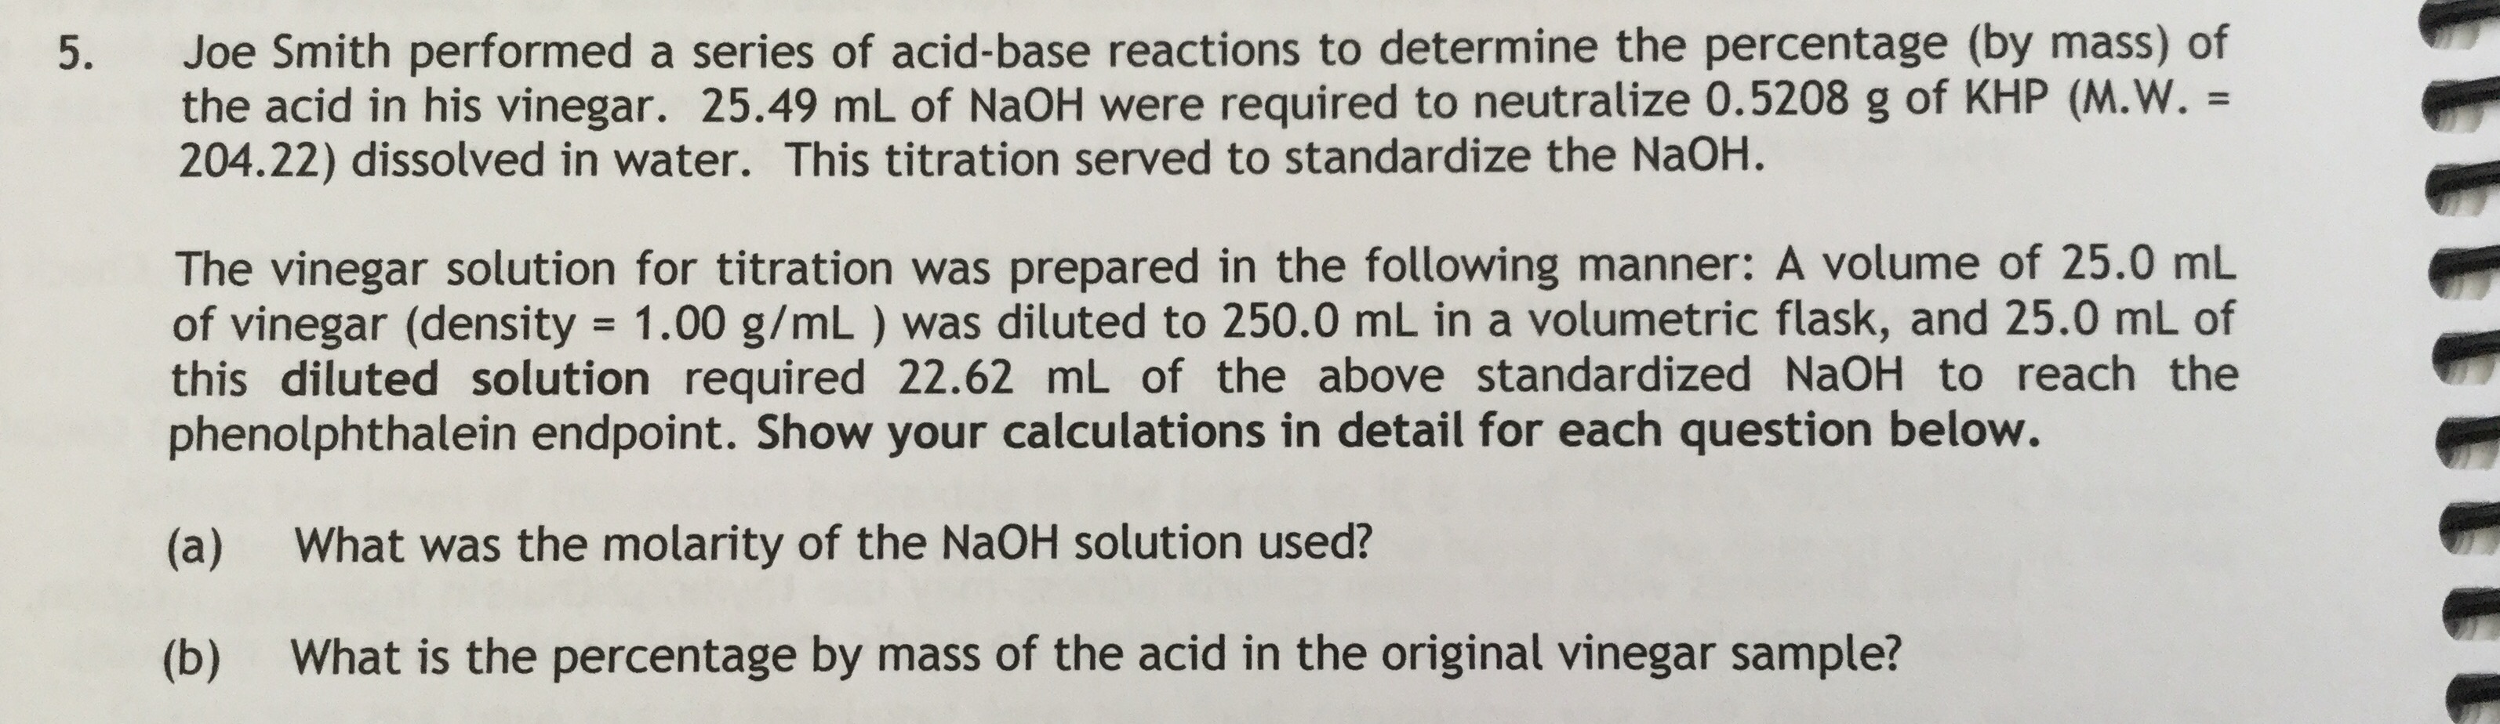 Joe Smith Performed A Series Of Acidbase Reaction